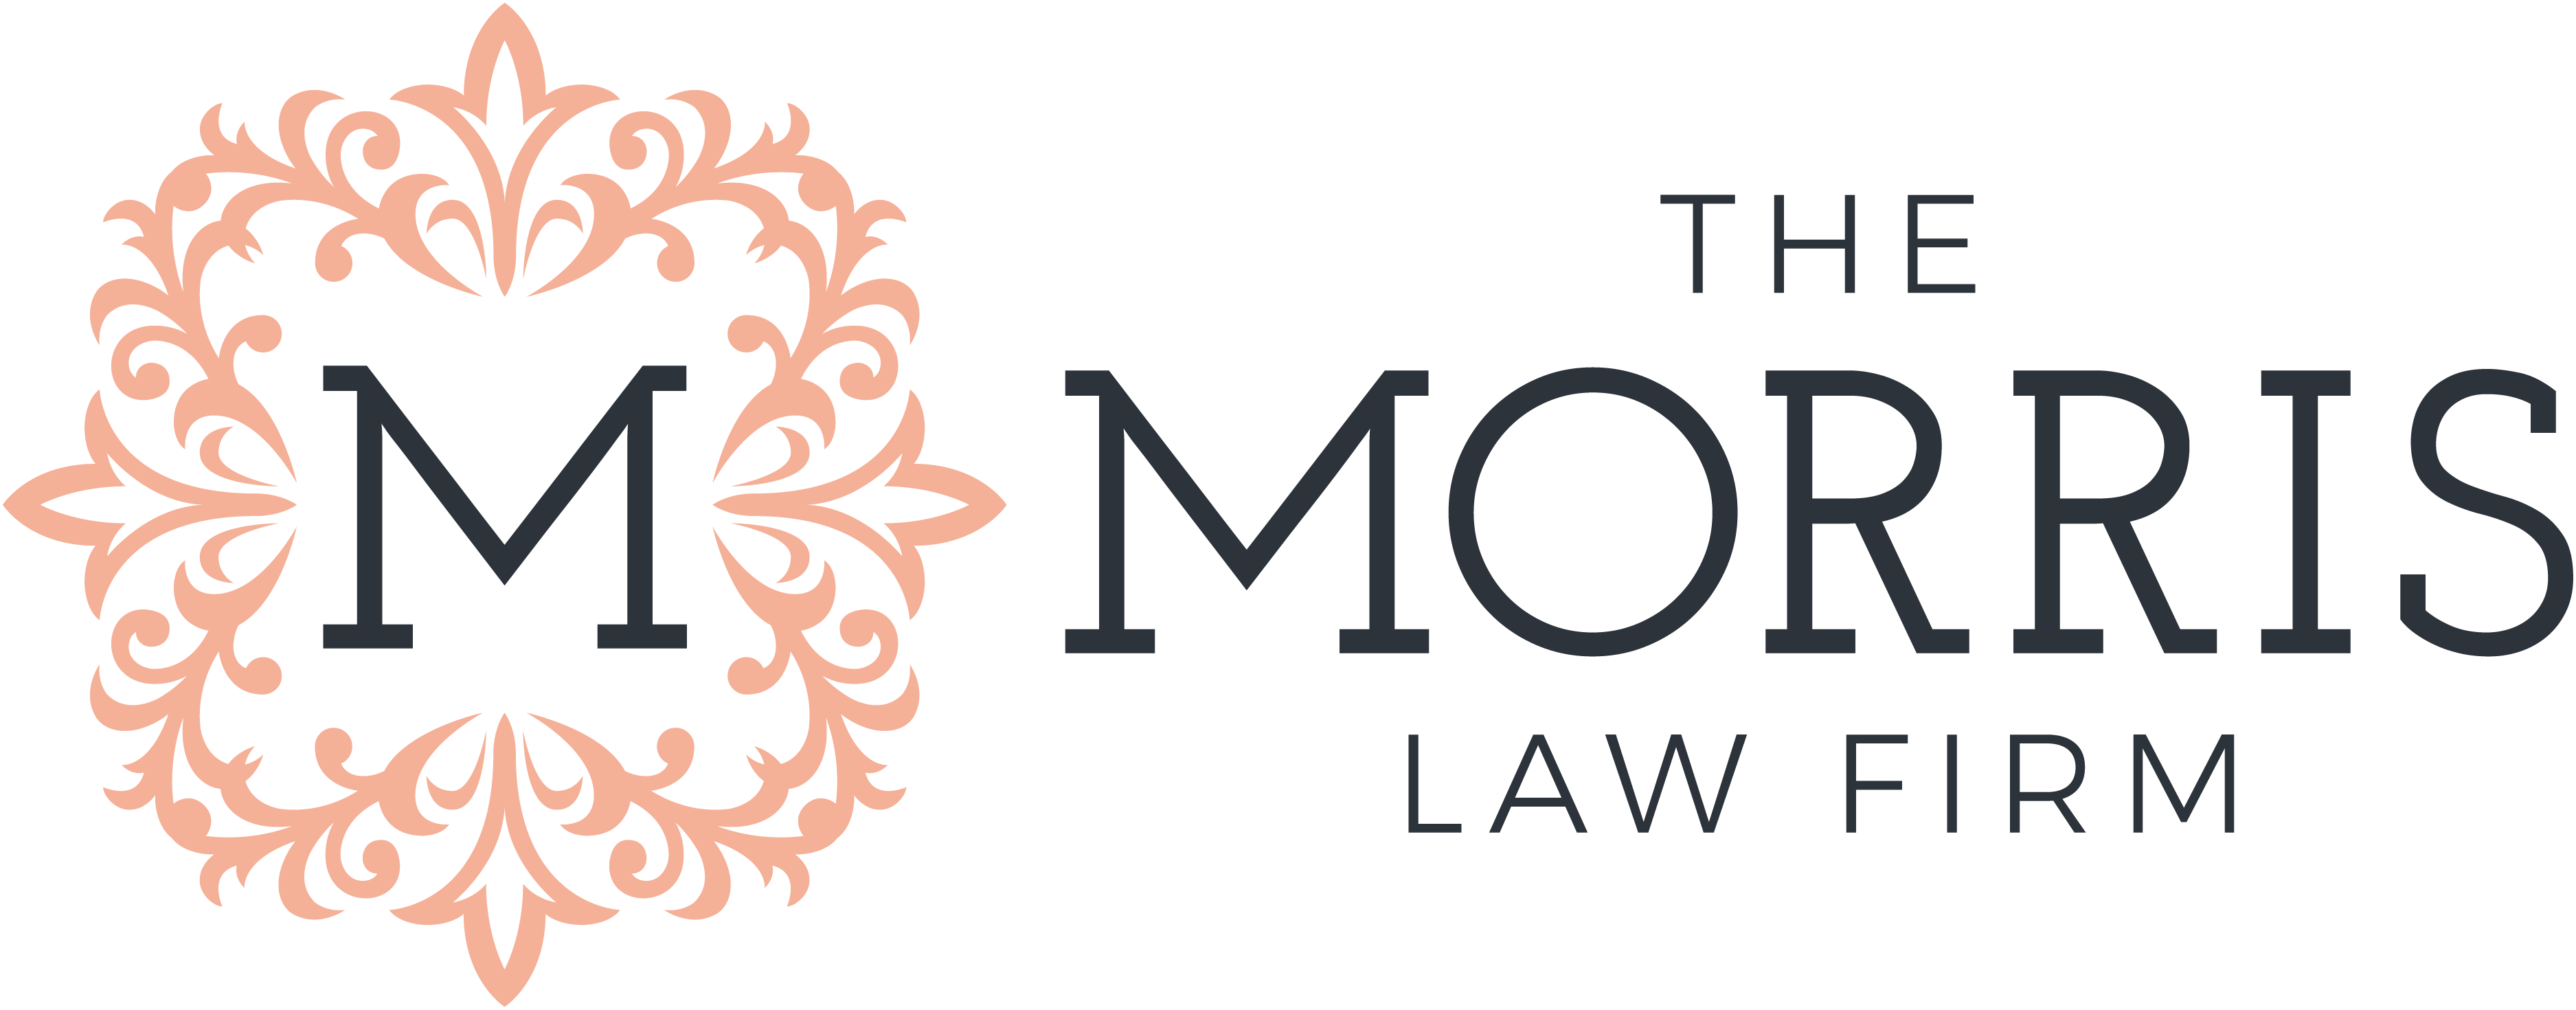 The Morris Law Firm, PLLC